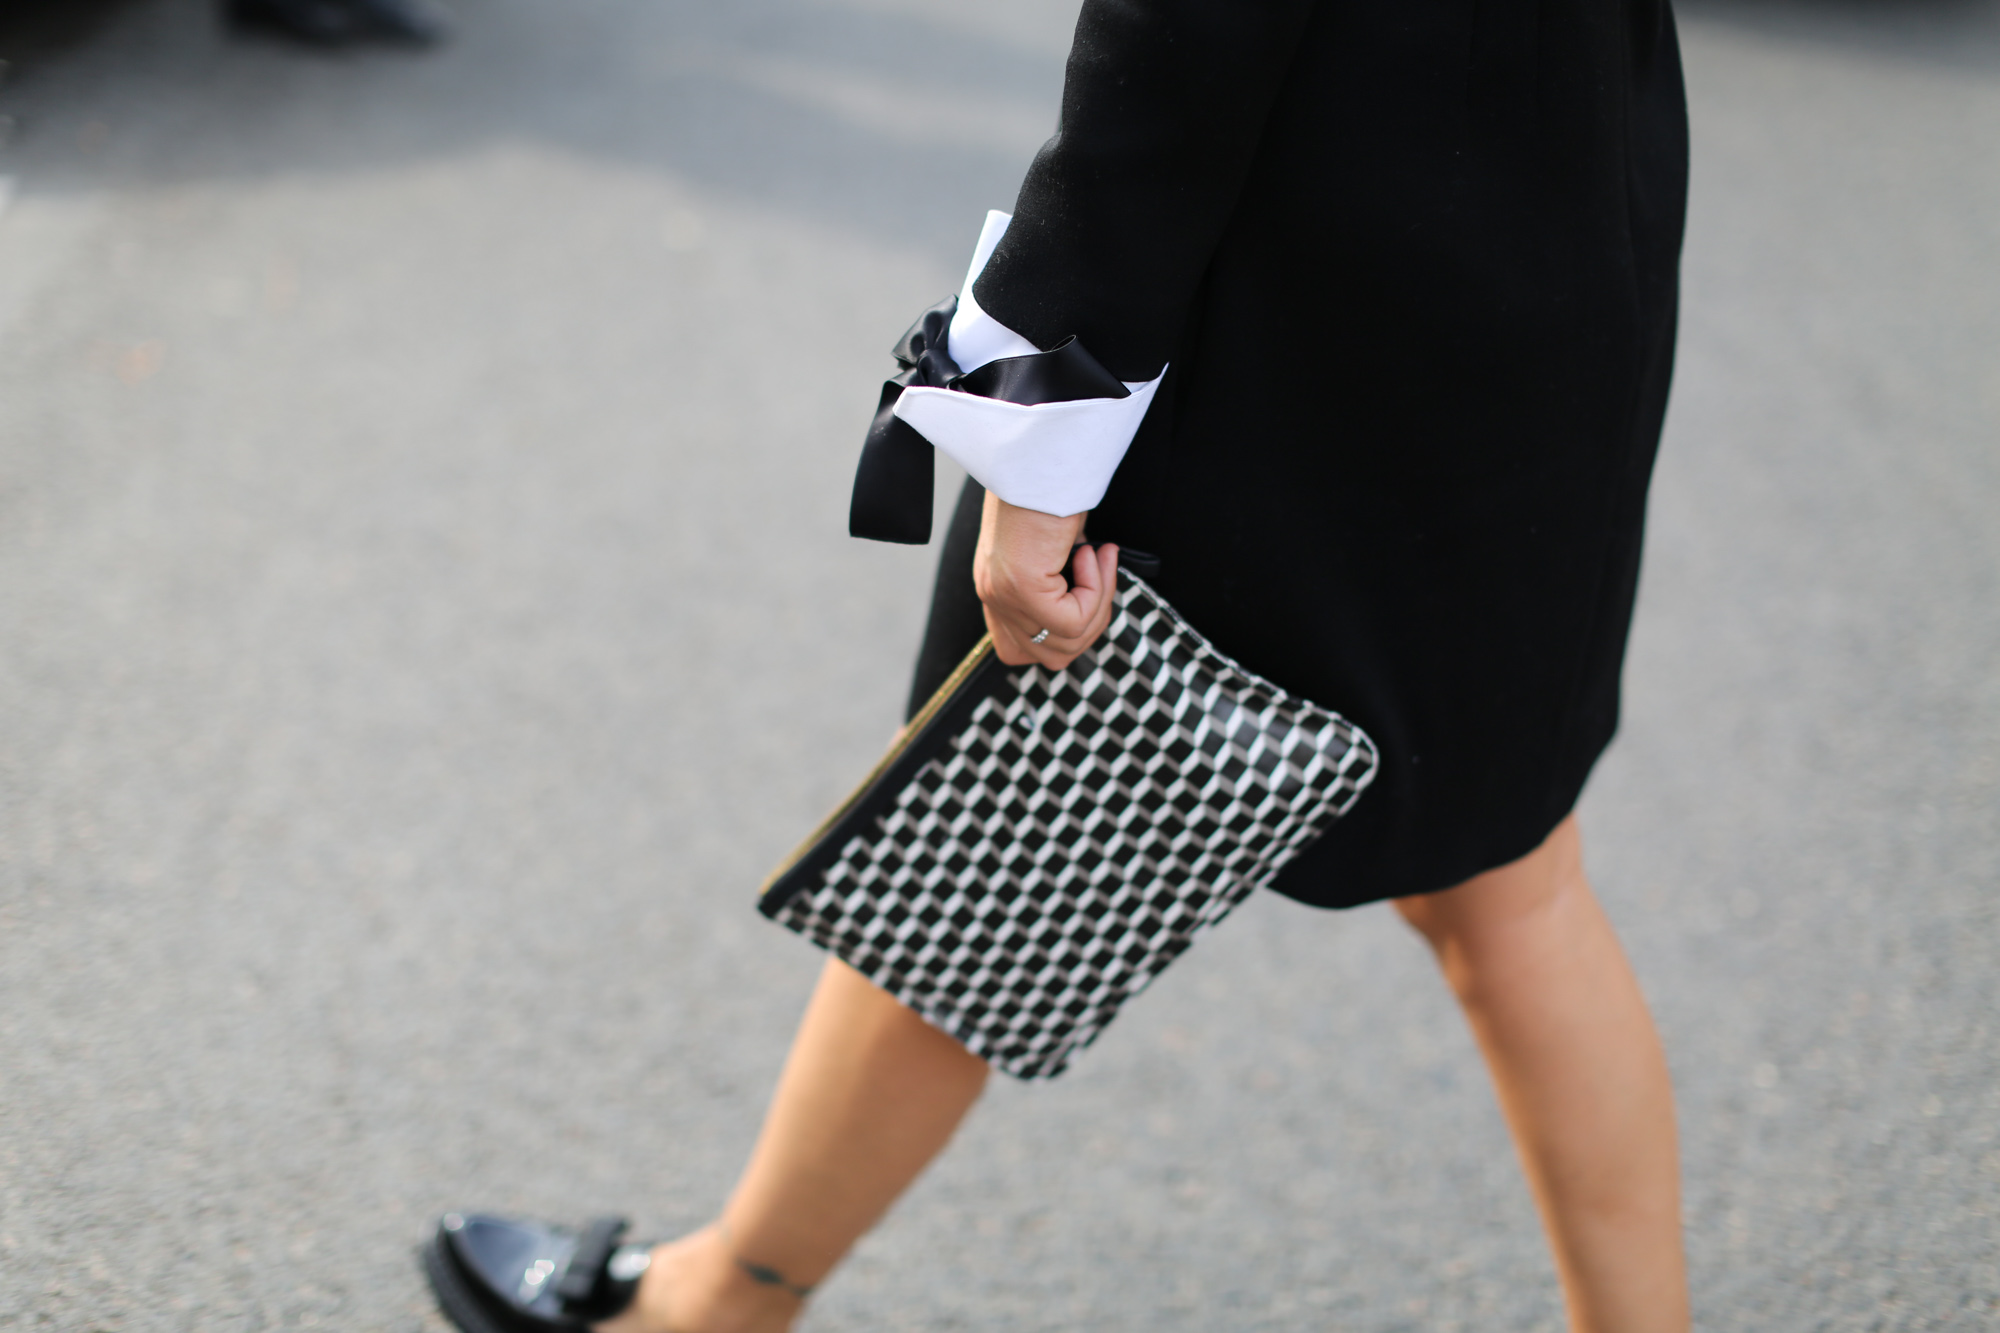 Clochet-streetstyle-details-loafers-clutch-paris-fashion-week-2